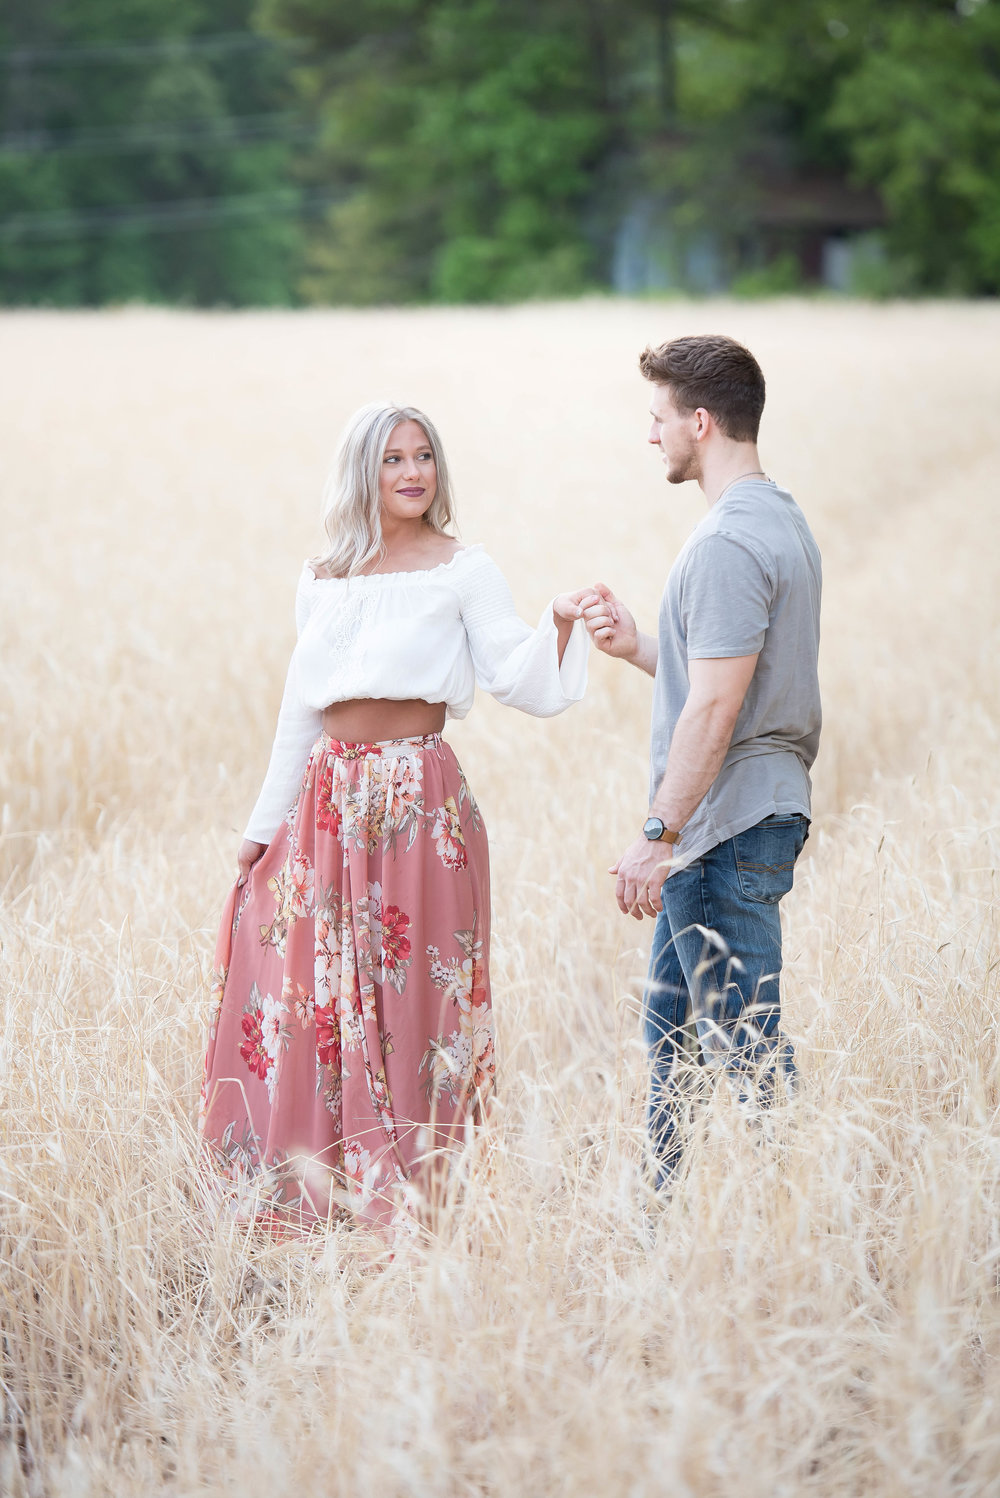 Couple Session - Fitness Couples - Tall Grass Field - Engagement Portrait Ideas - Engagement Session Ideas - Couple Session Ideas - Spring Picture Ideas-2.jpg